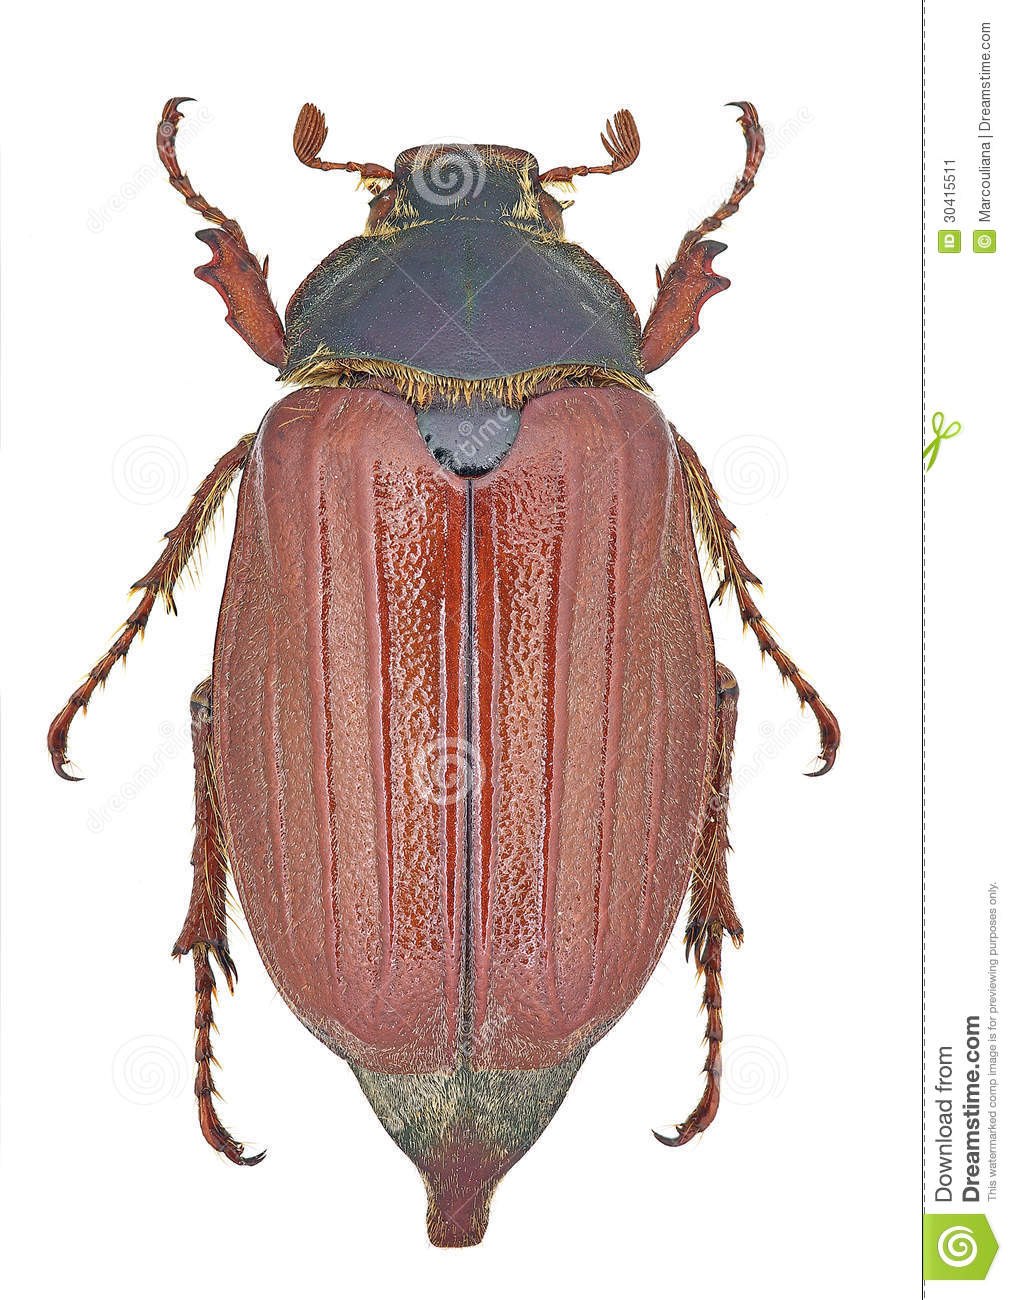 Melolontha Melolontha Cockchafer Stock Image.